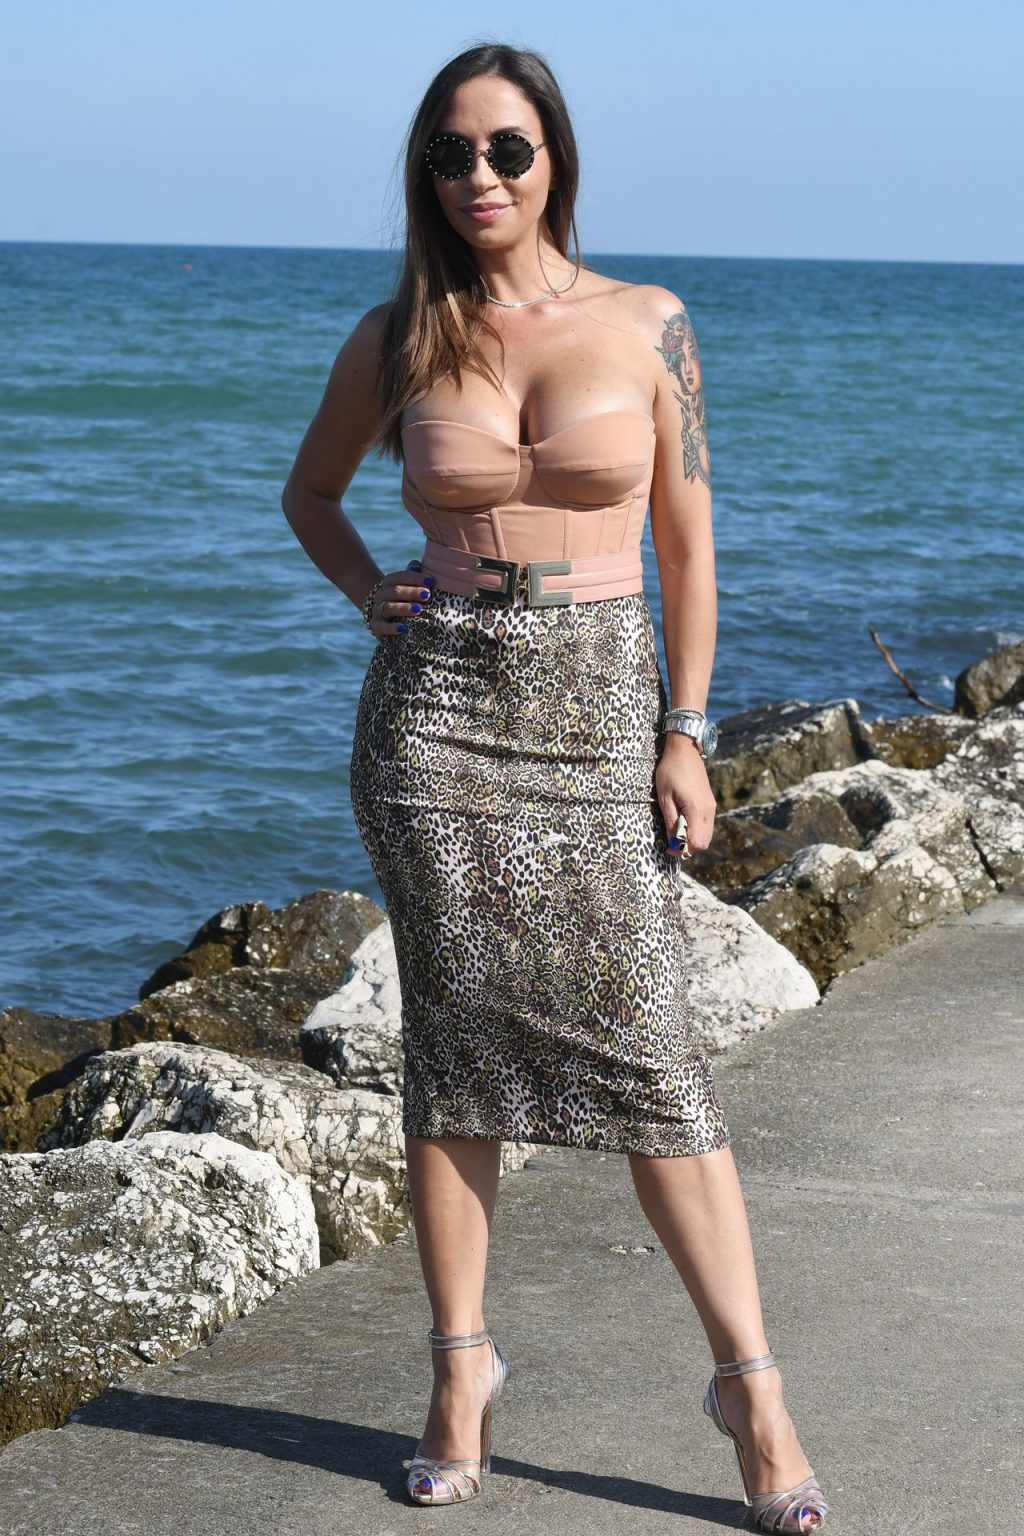 Malena La Pugliese Displays Her Boobs at the 77th Venice Film Festival (64 Photos)